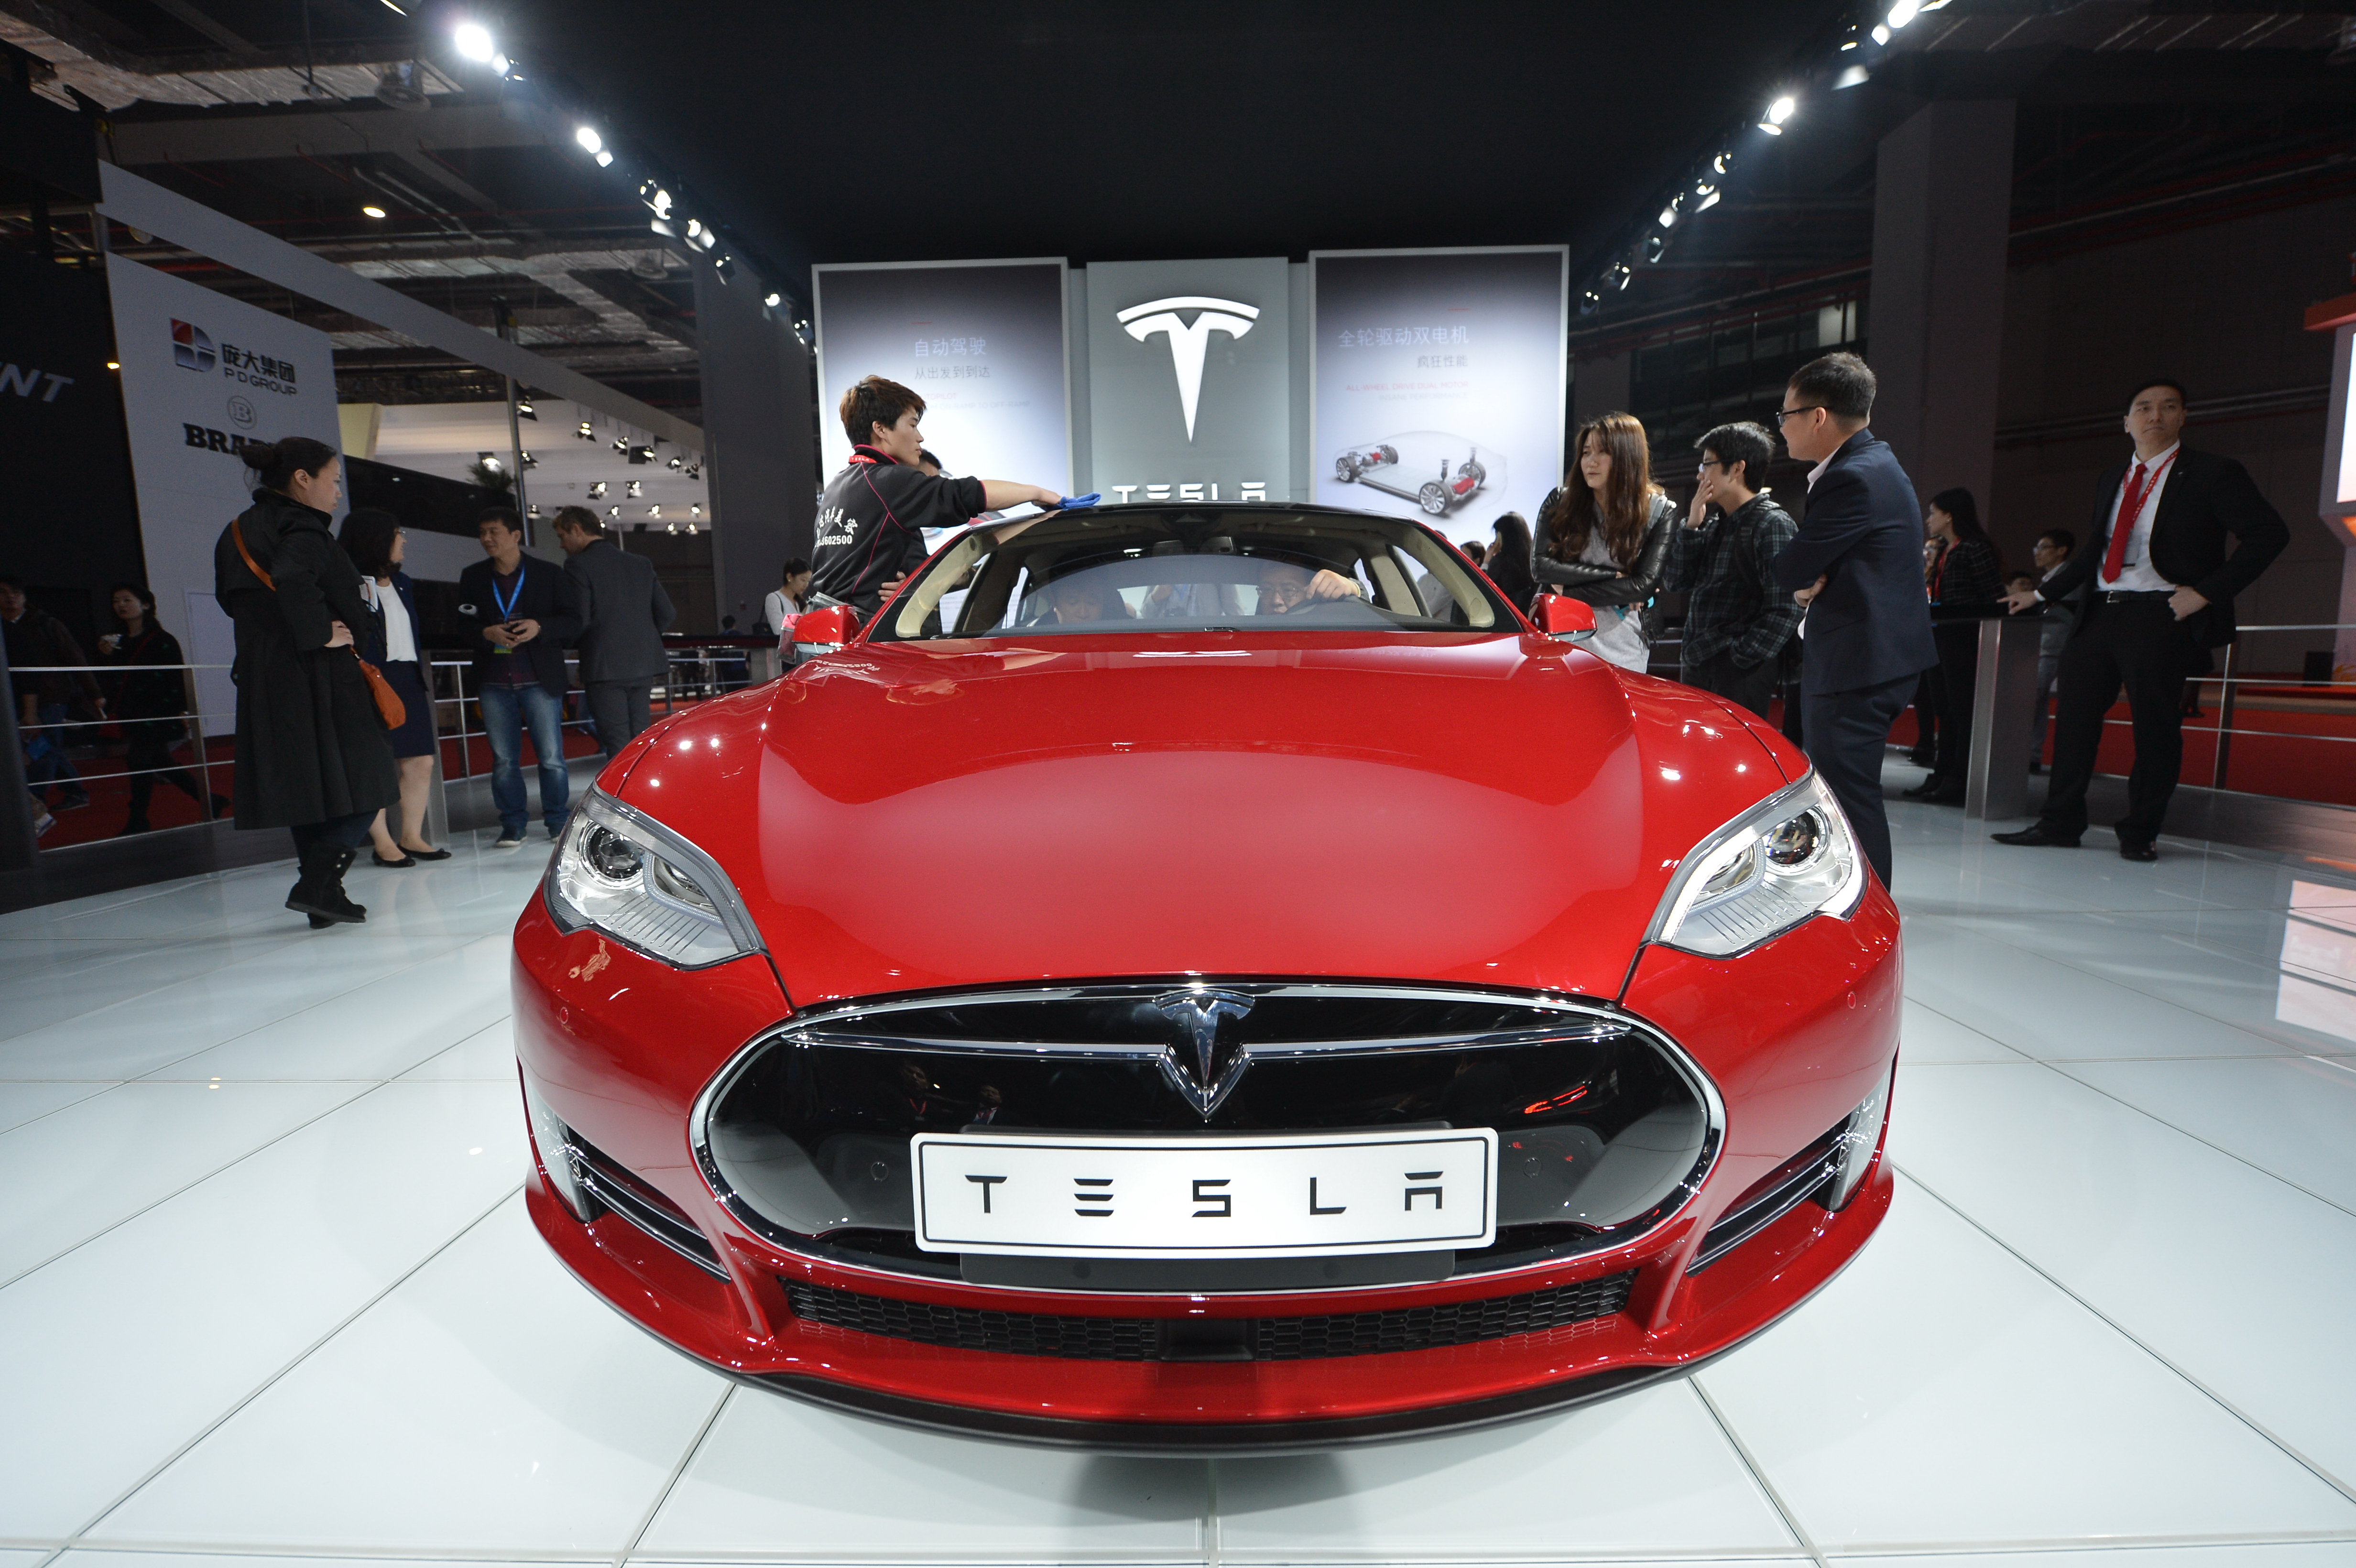 Tesla Model S electric car on display at the 16th Shanghai International Automobile Industry Exhibition in Shanghai on April 20, 2015.